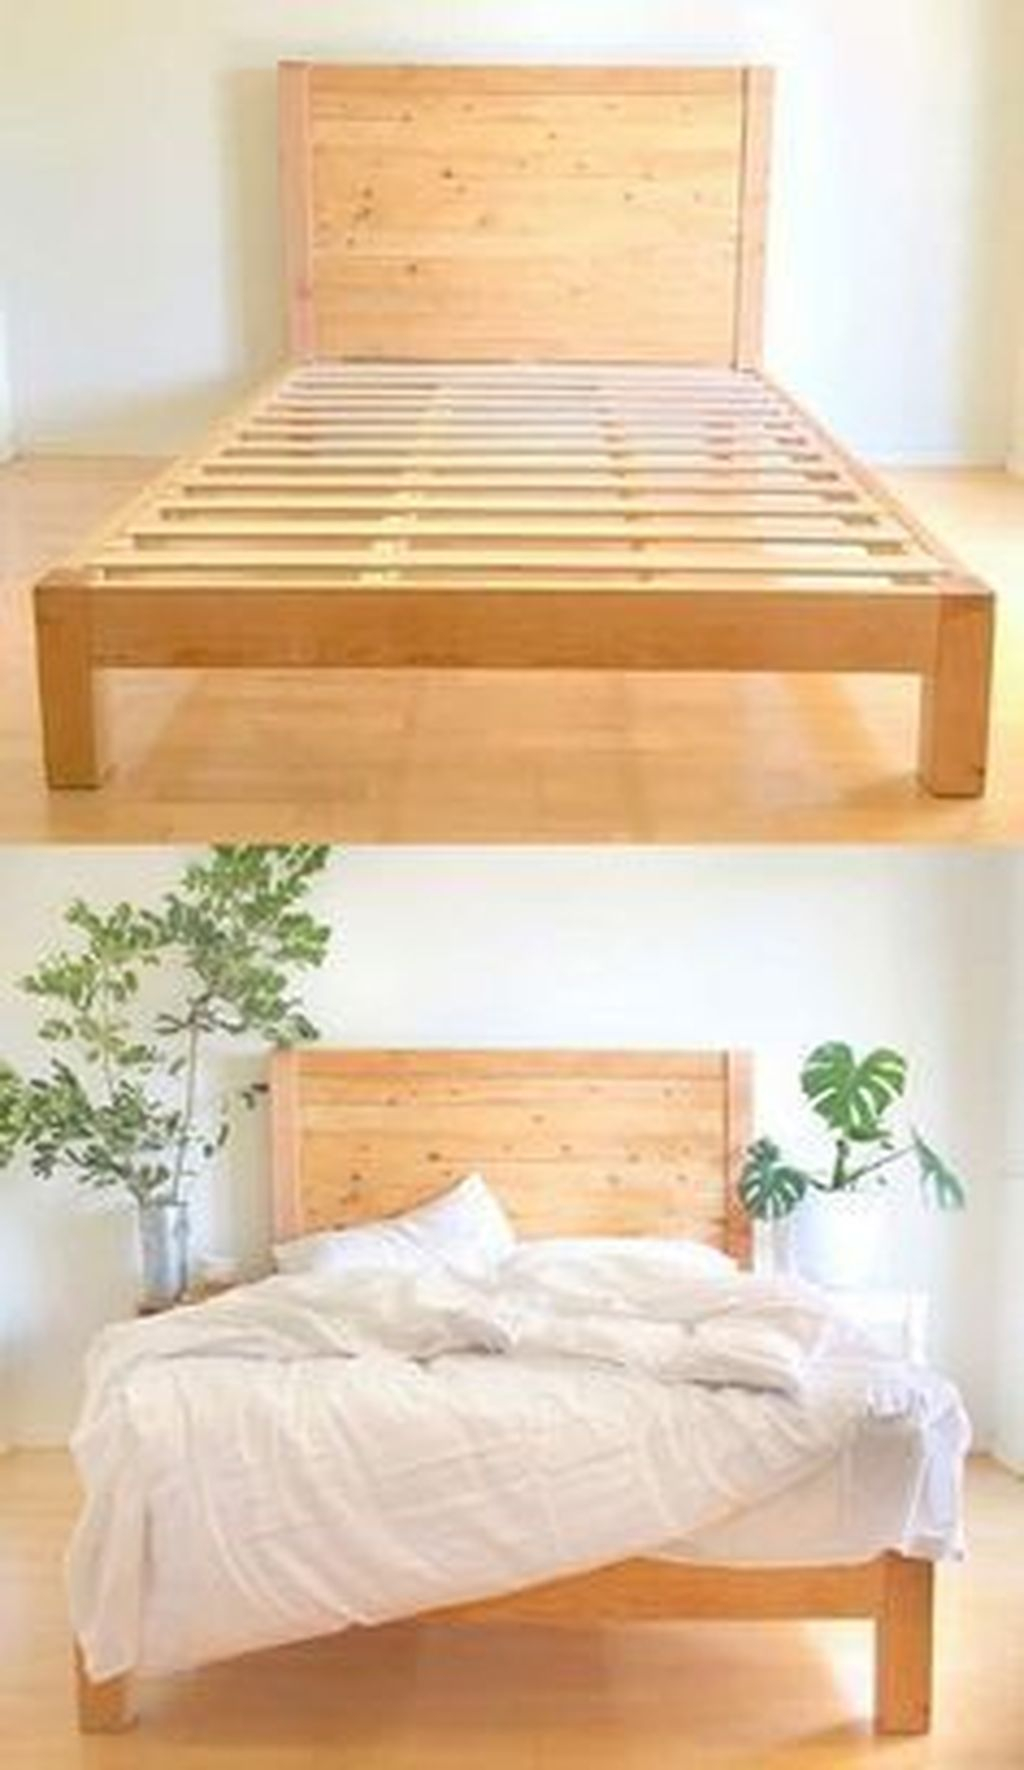 Stylish Diy Bedroom Headboard Design Ideas That Will Inspire You 14